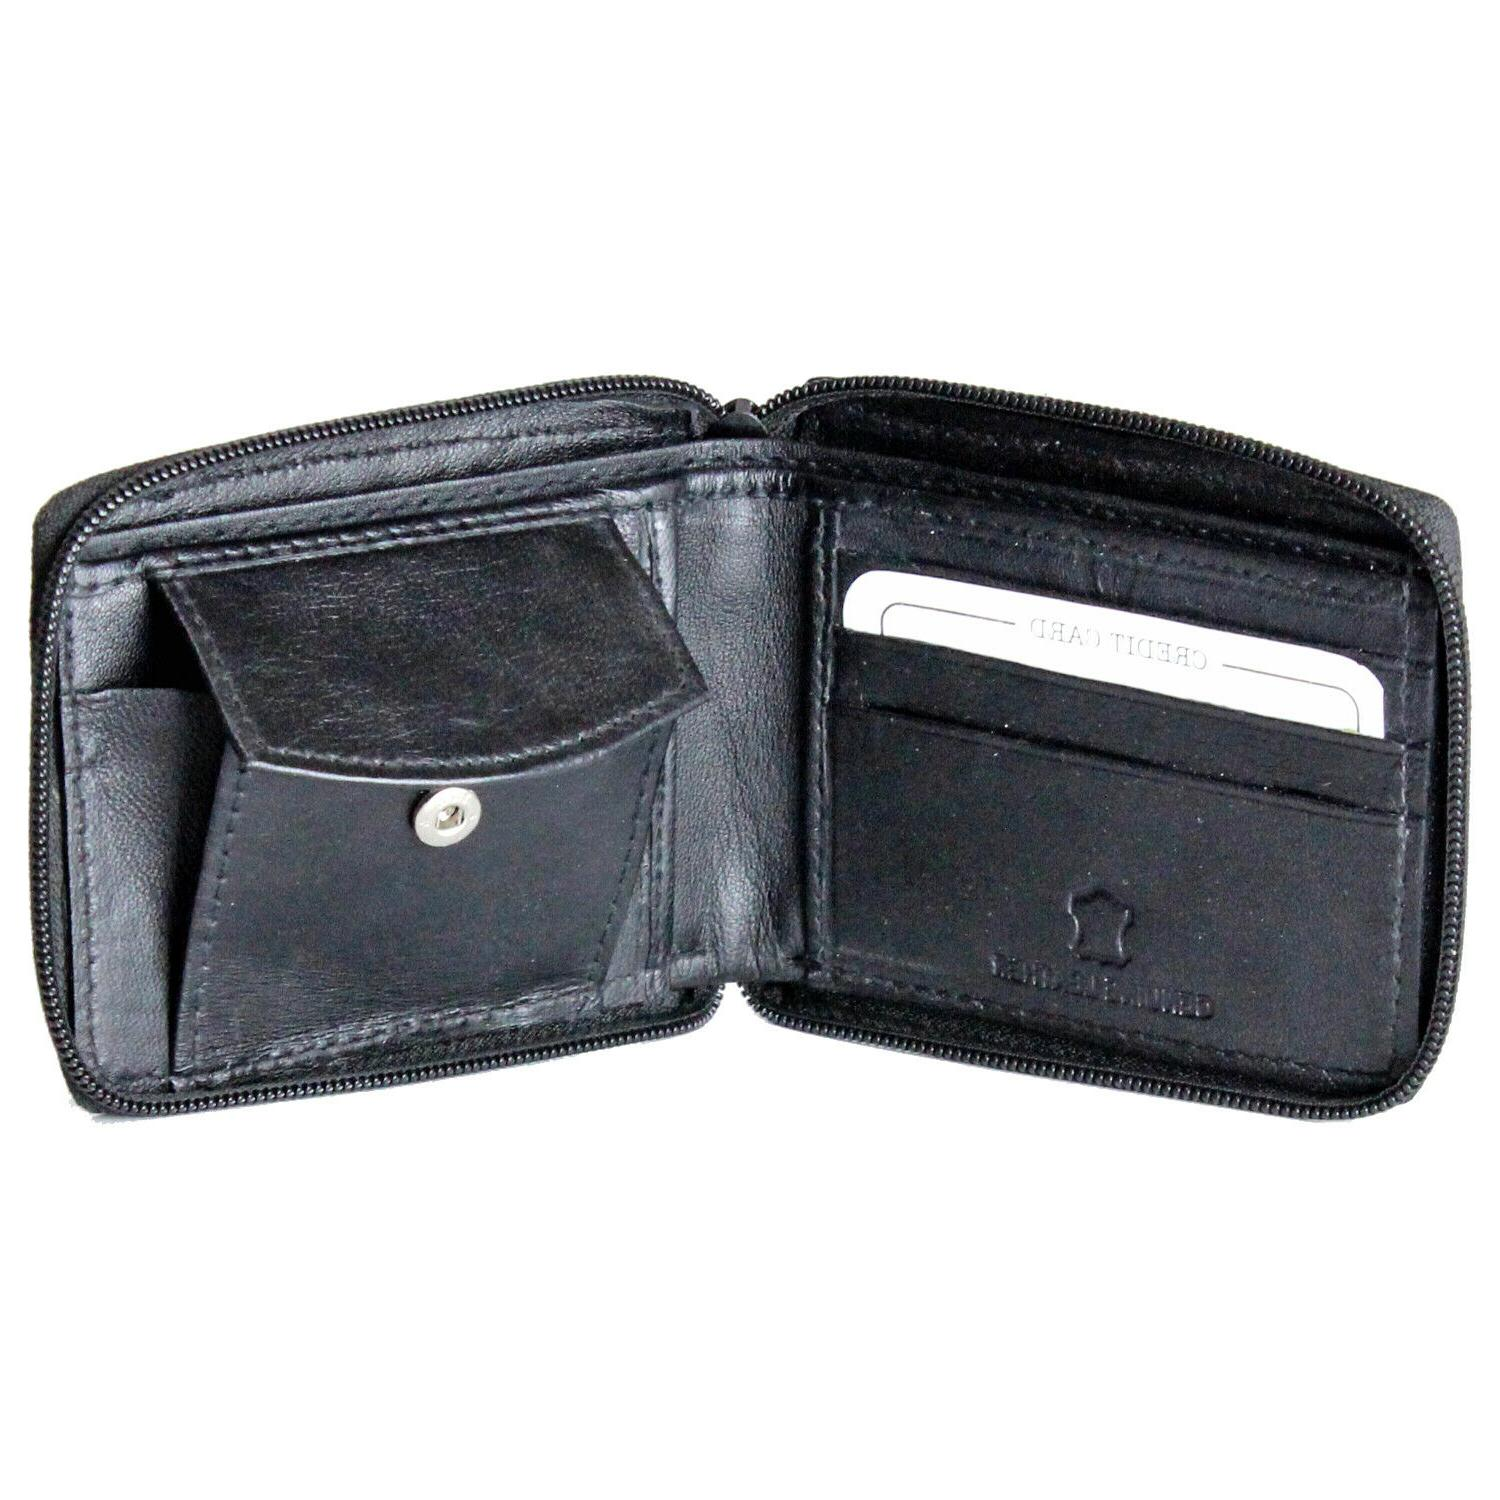 New Mens Zip Zipper Wallet Key